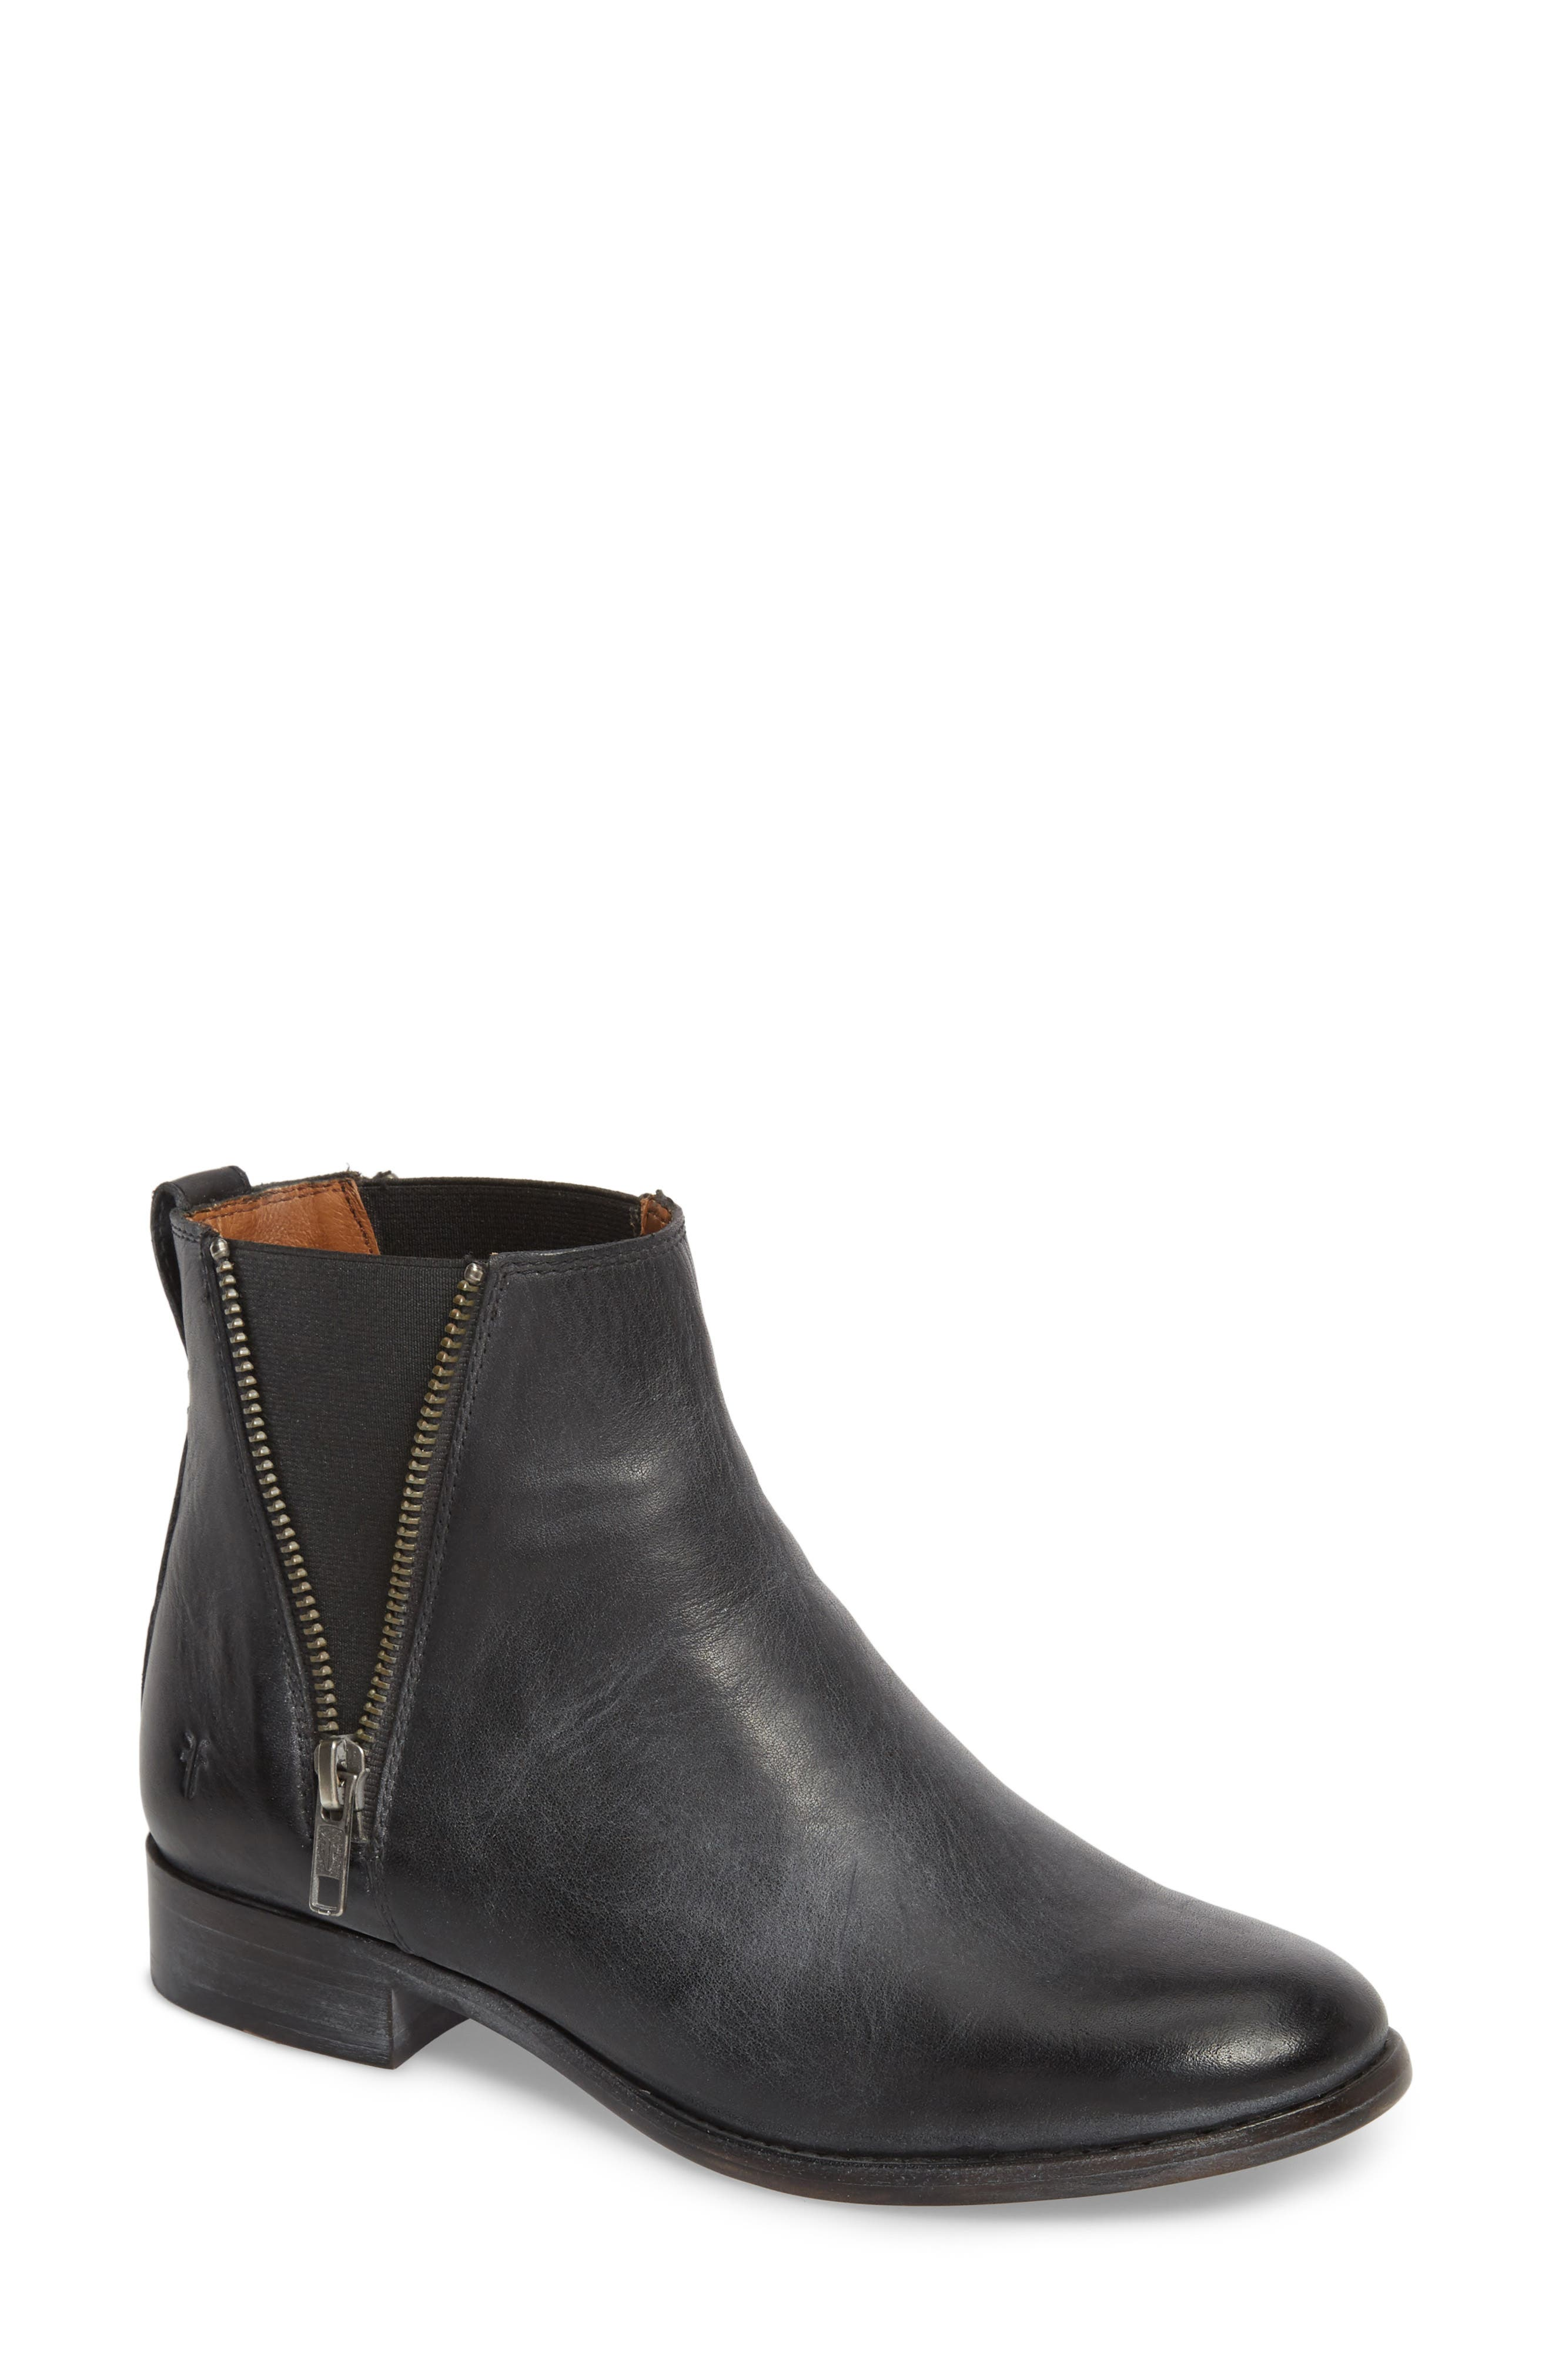 FRYE Carly Chelsea Boot, Main, color, BLACK ANTIQUED LEATHER